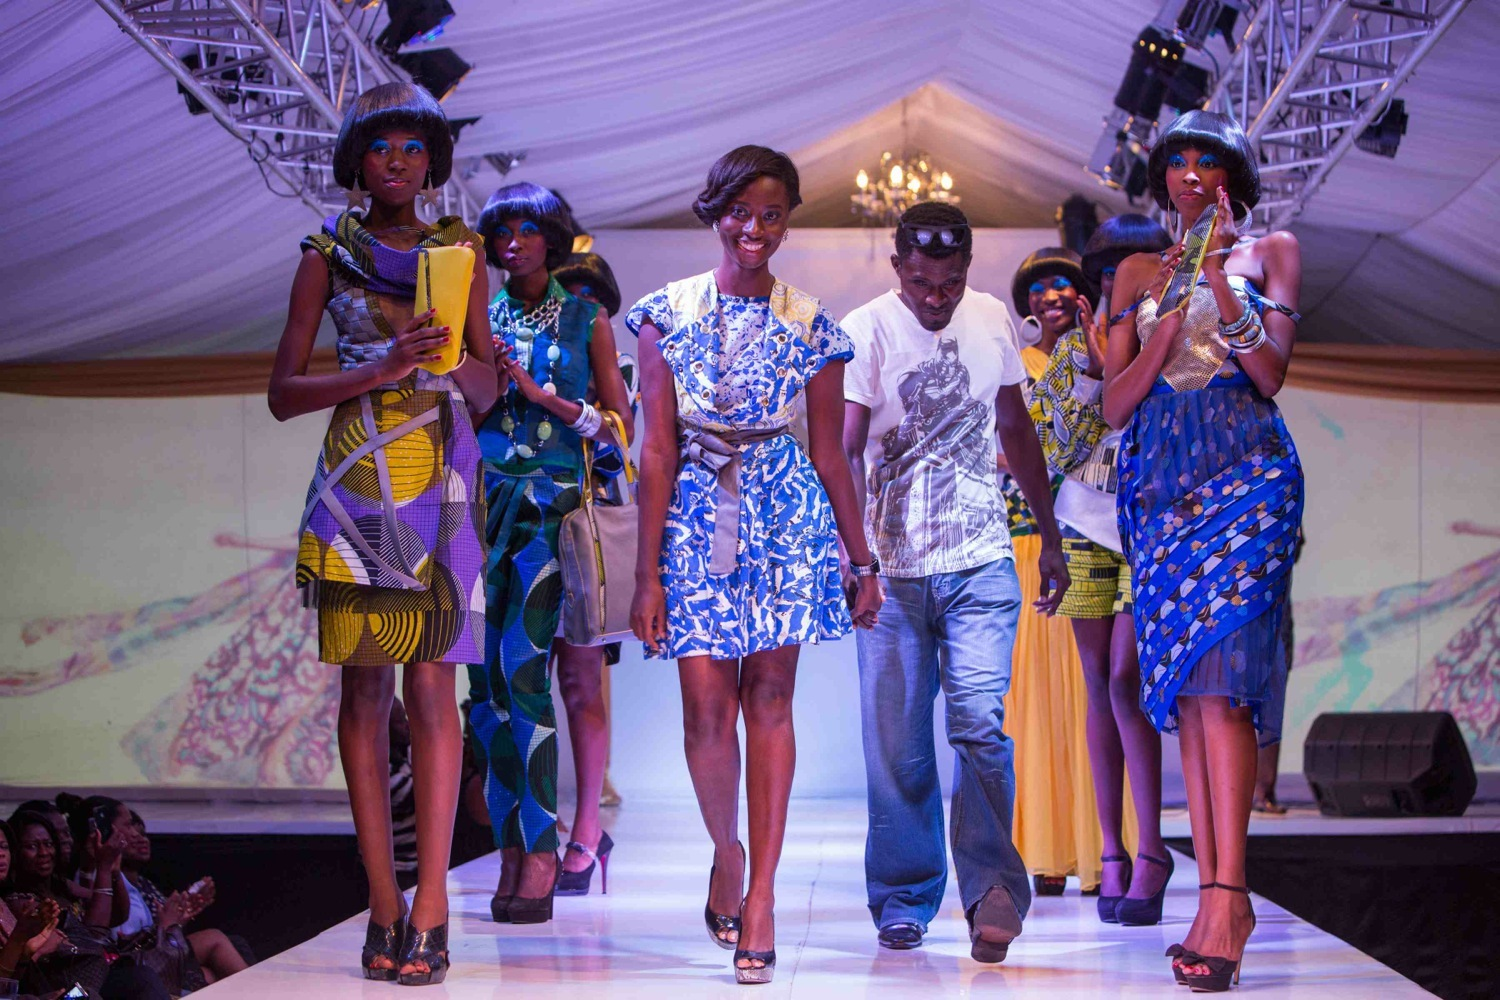 Best for fun fabrics: Vlisco